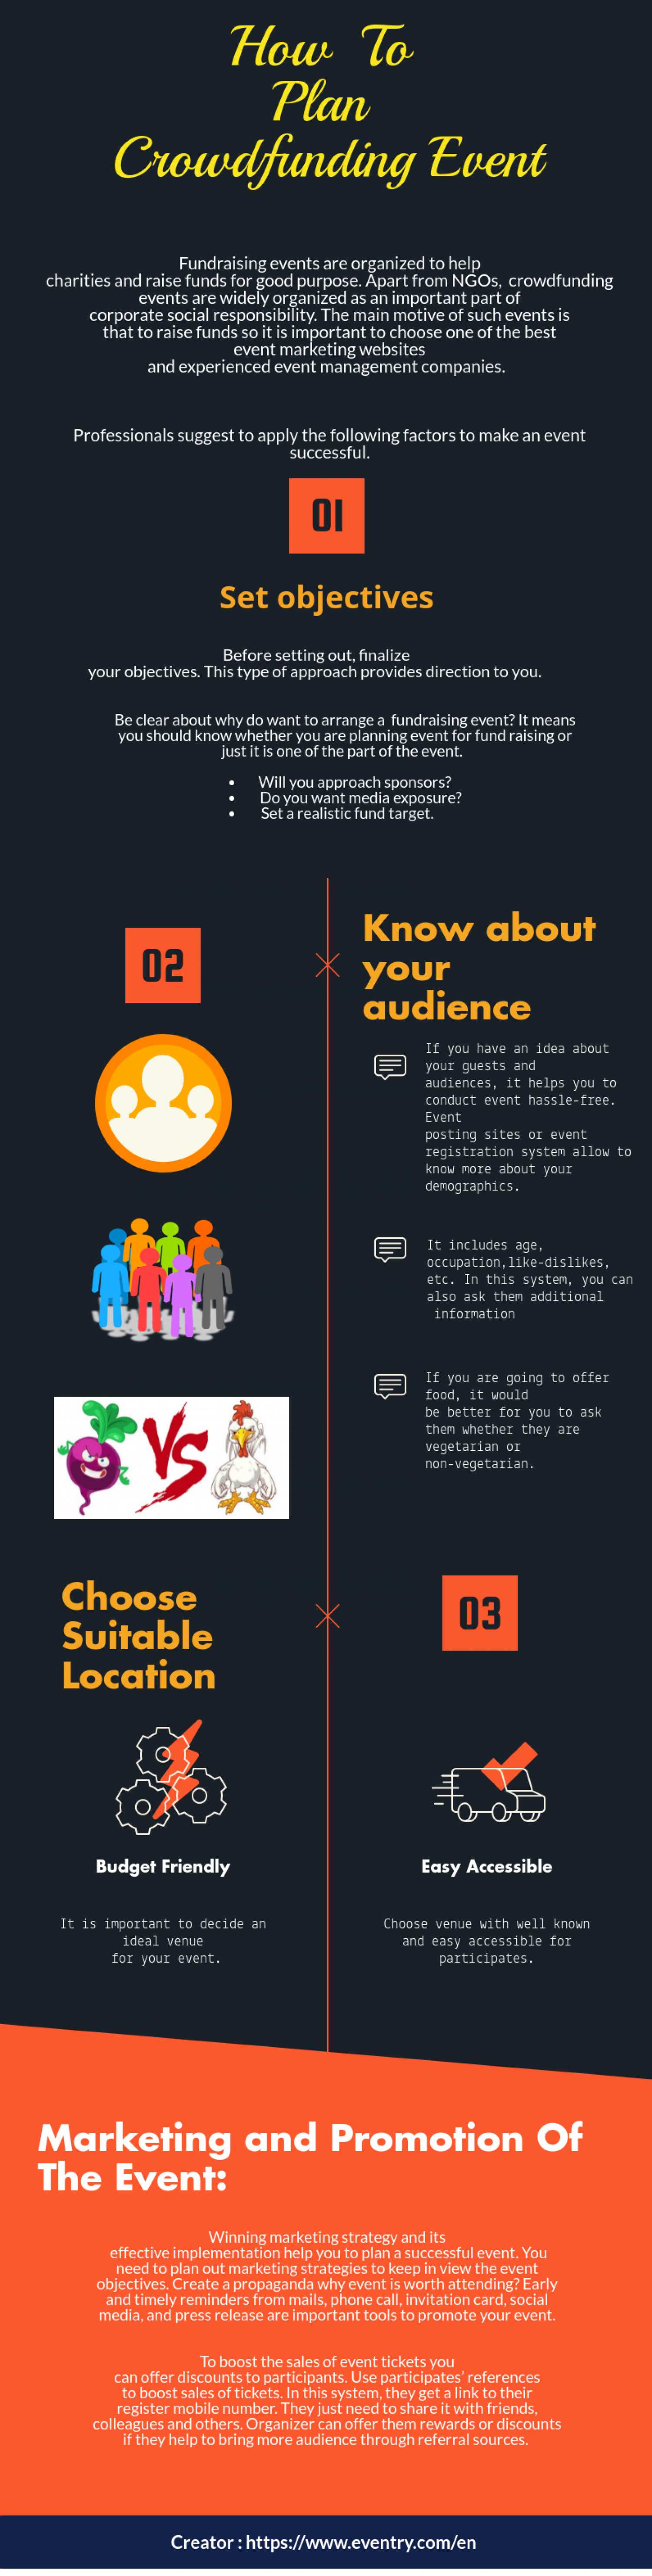 How To Plan The Crowdfunding Event. Infographic